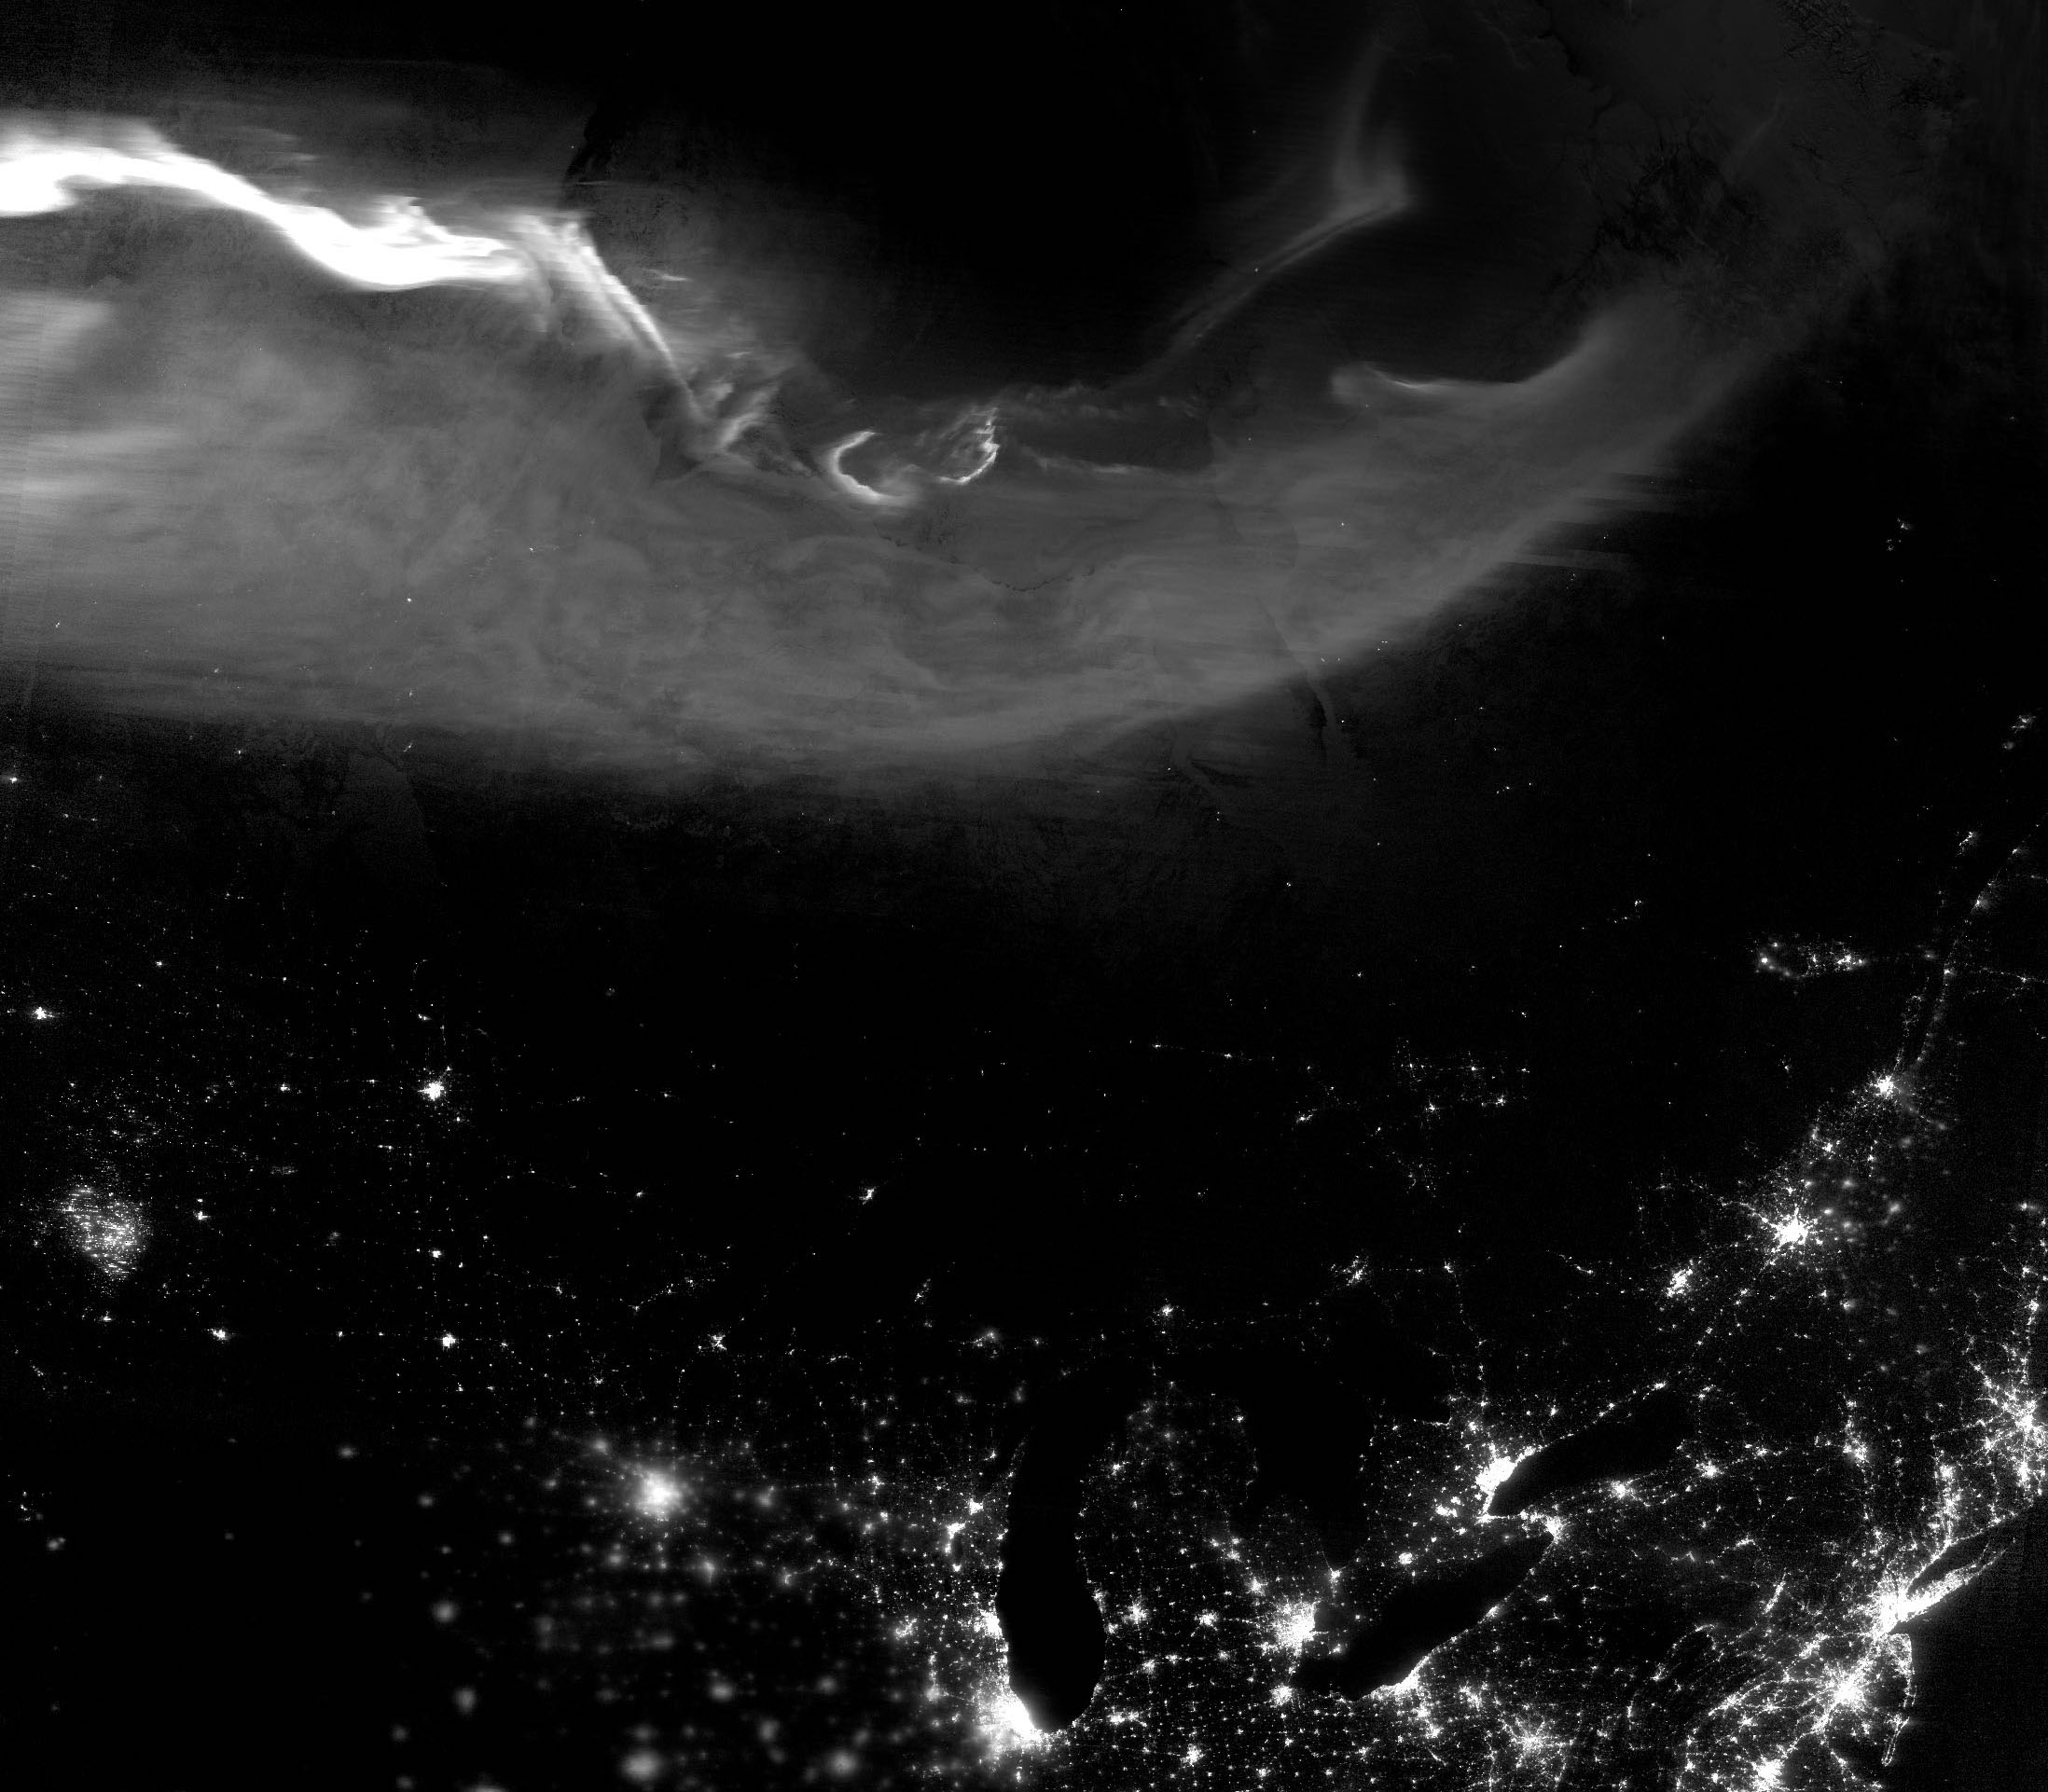 Today's Image of the Day comes from the NASA Earth Observatory and features a look at the aurora borealis lighting up the night sky over North America.